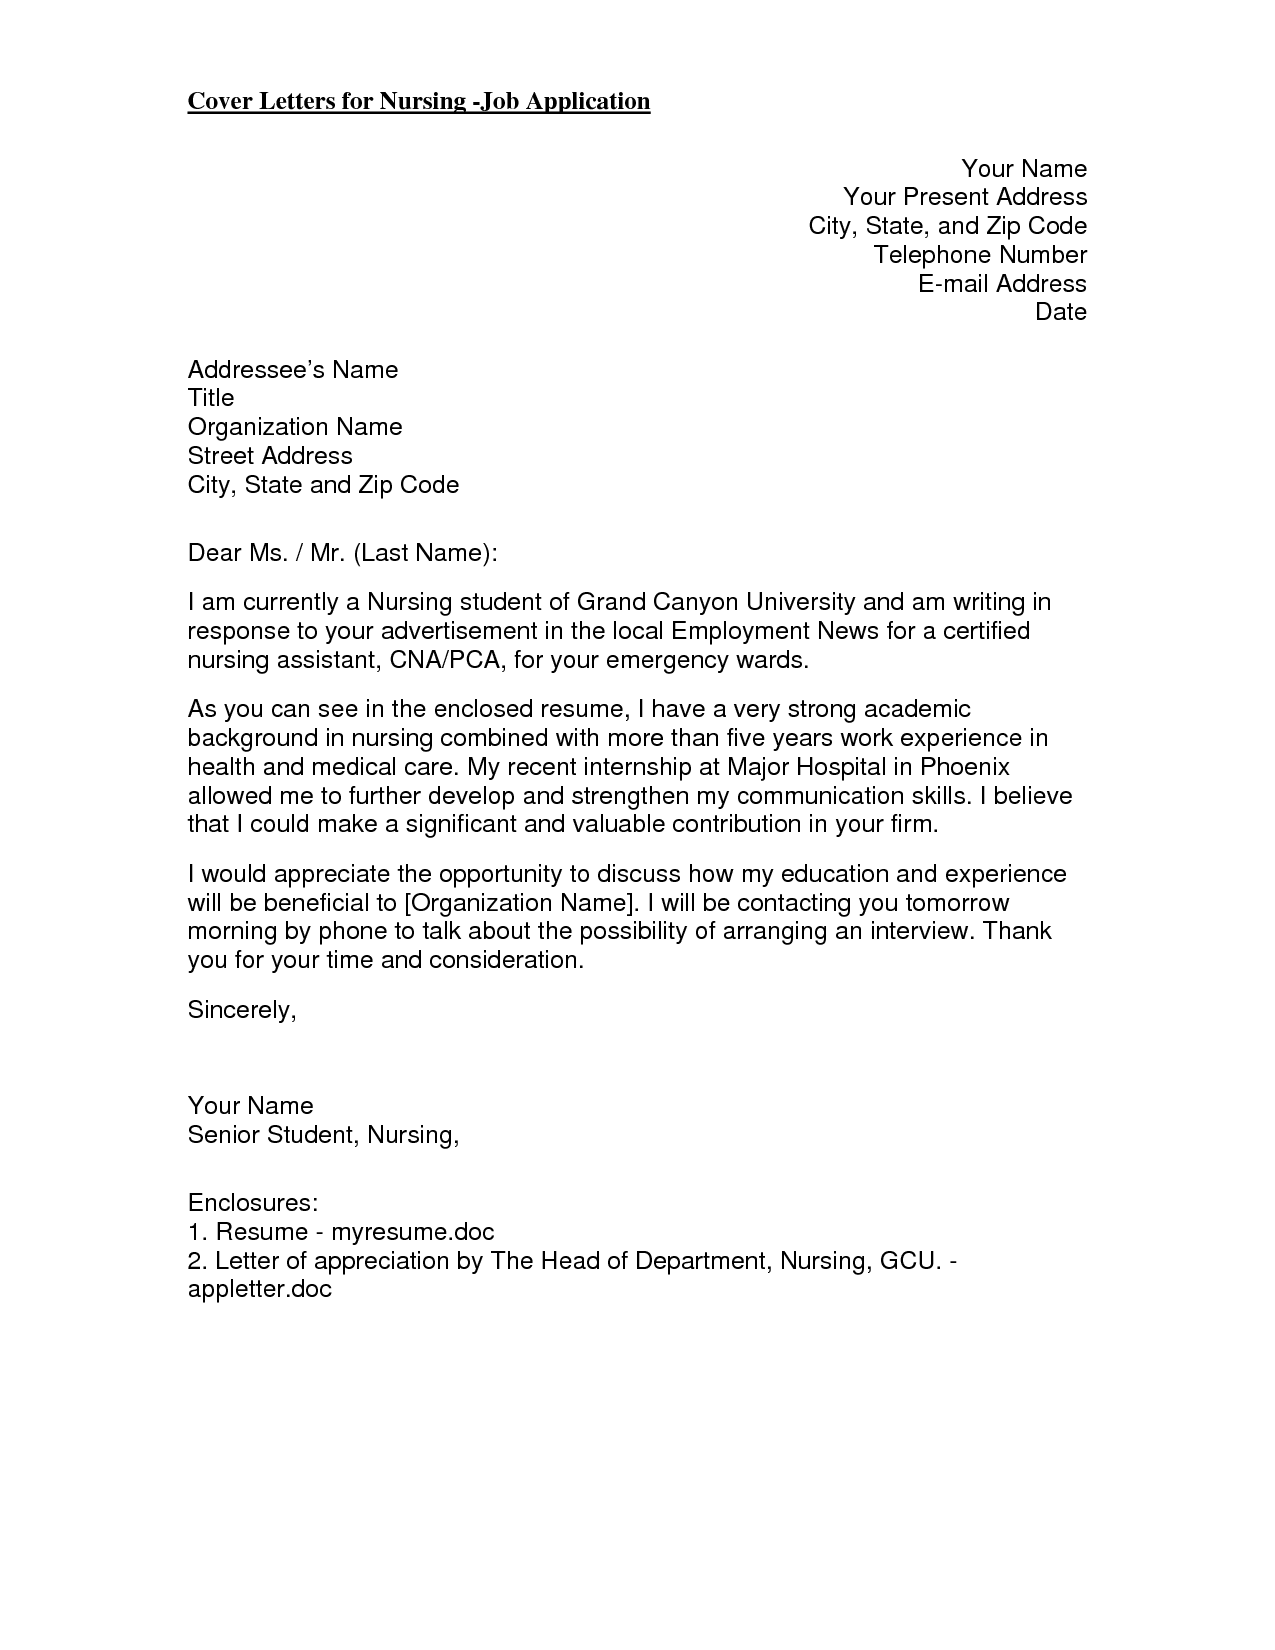 Cover letter for rfp response sample – Sample Cover Letter for Rfp